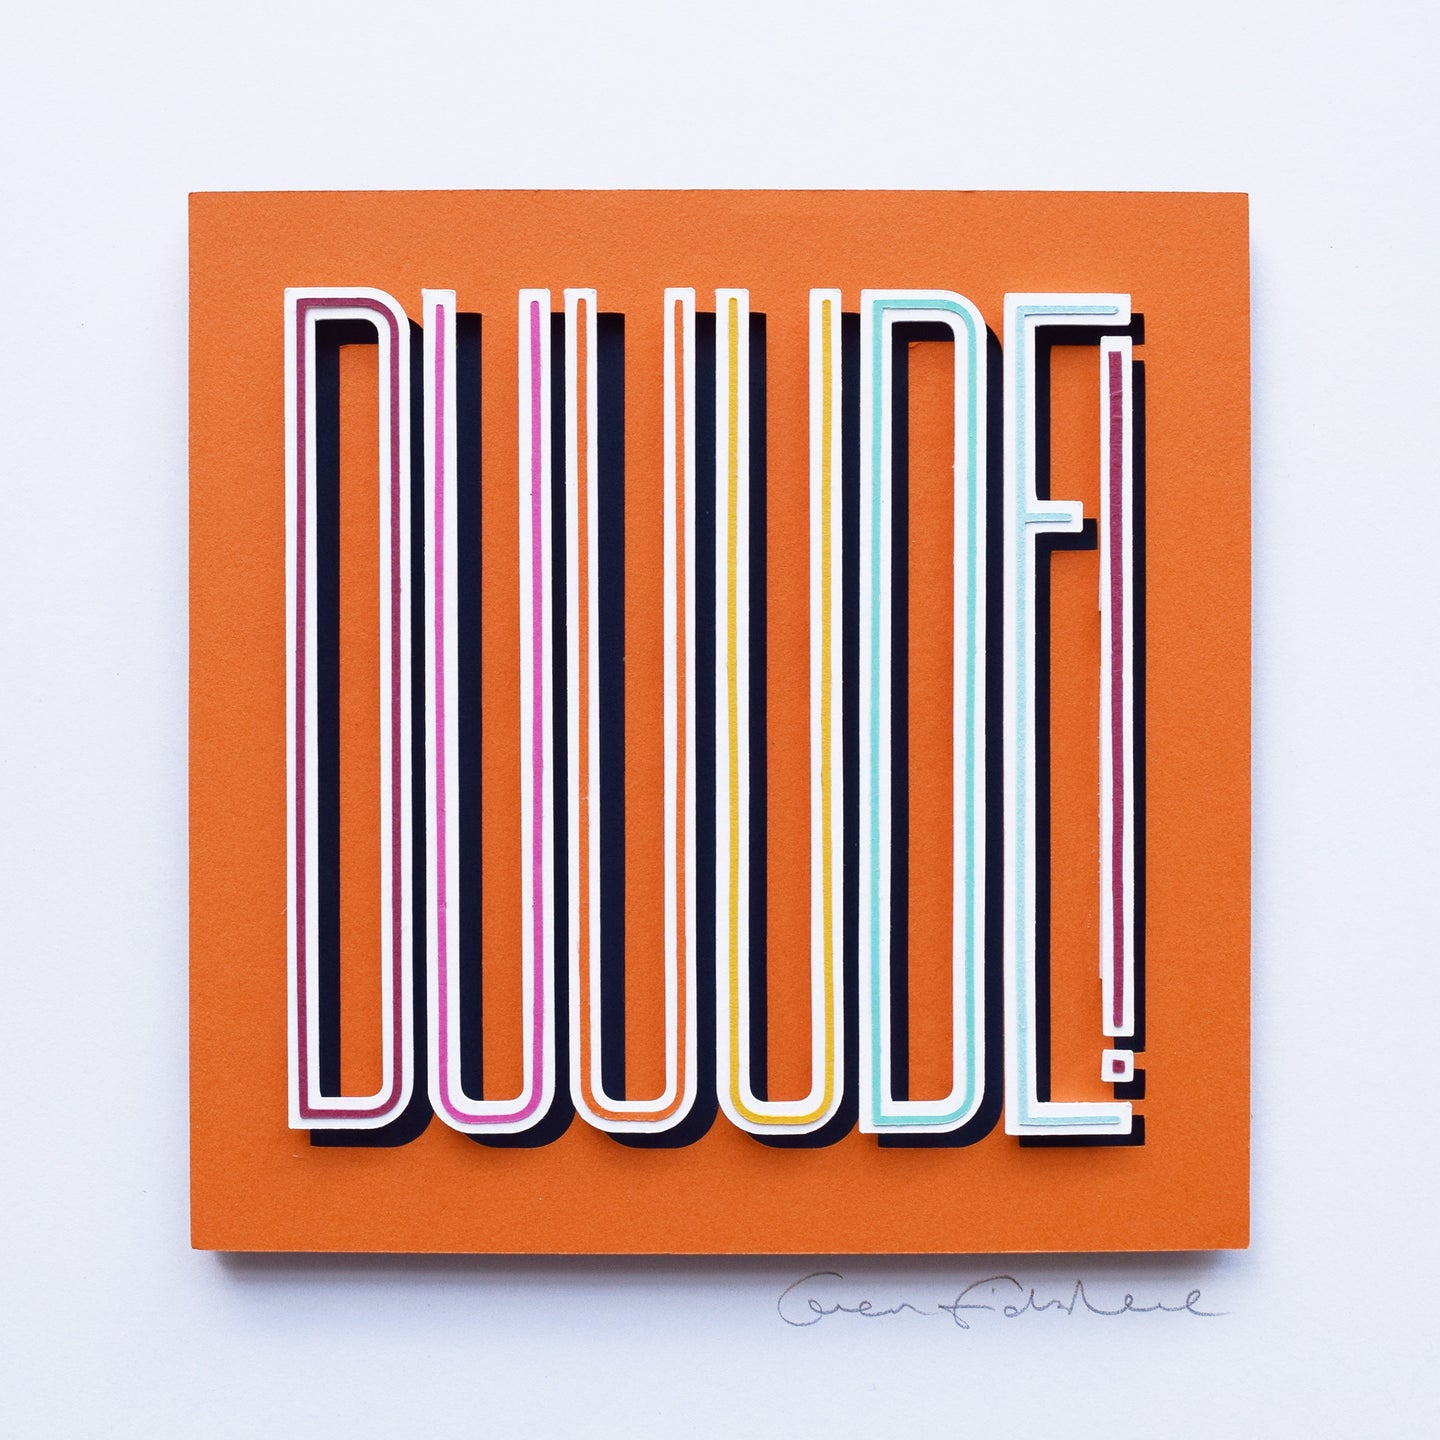 'Duuude' Framed Original Artwork